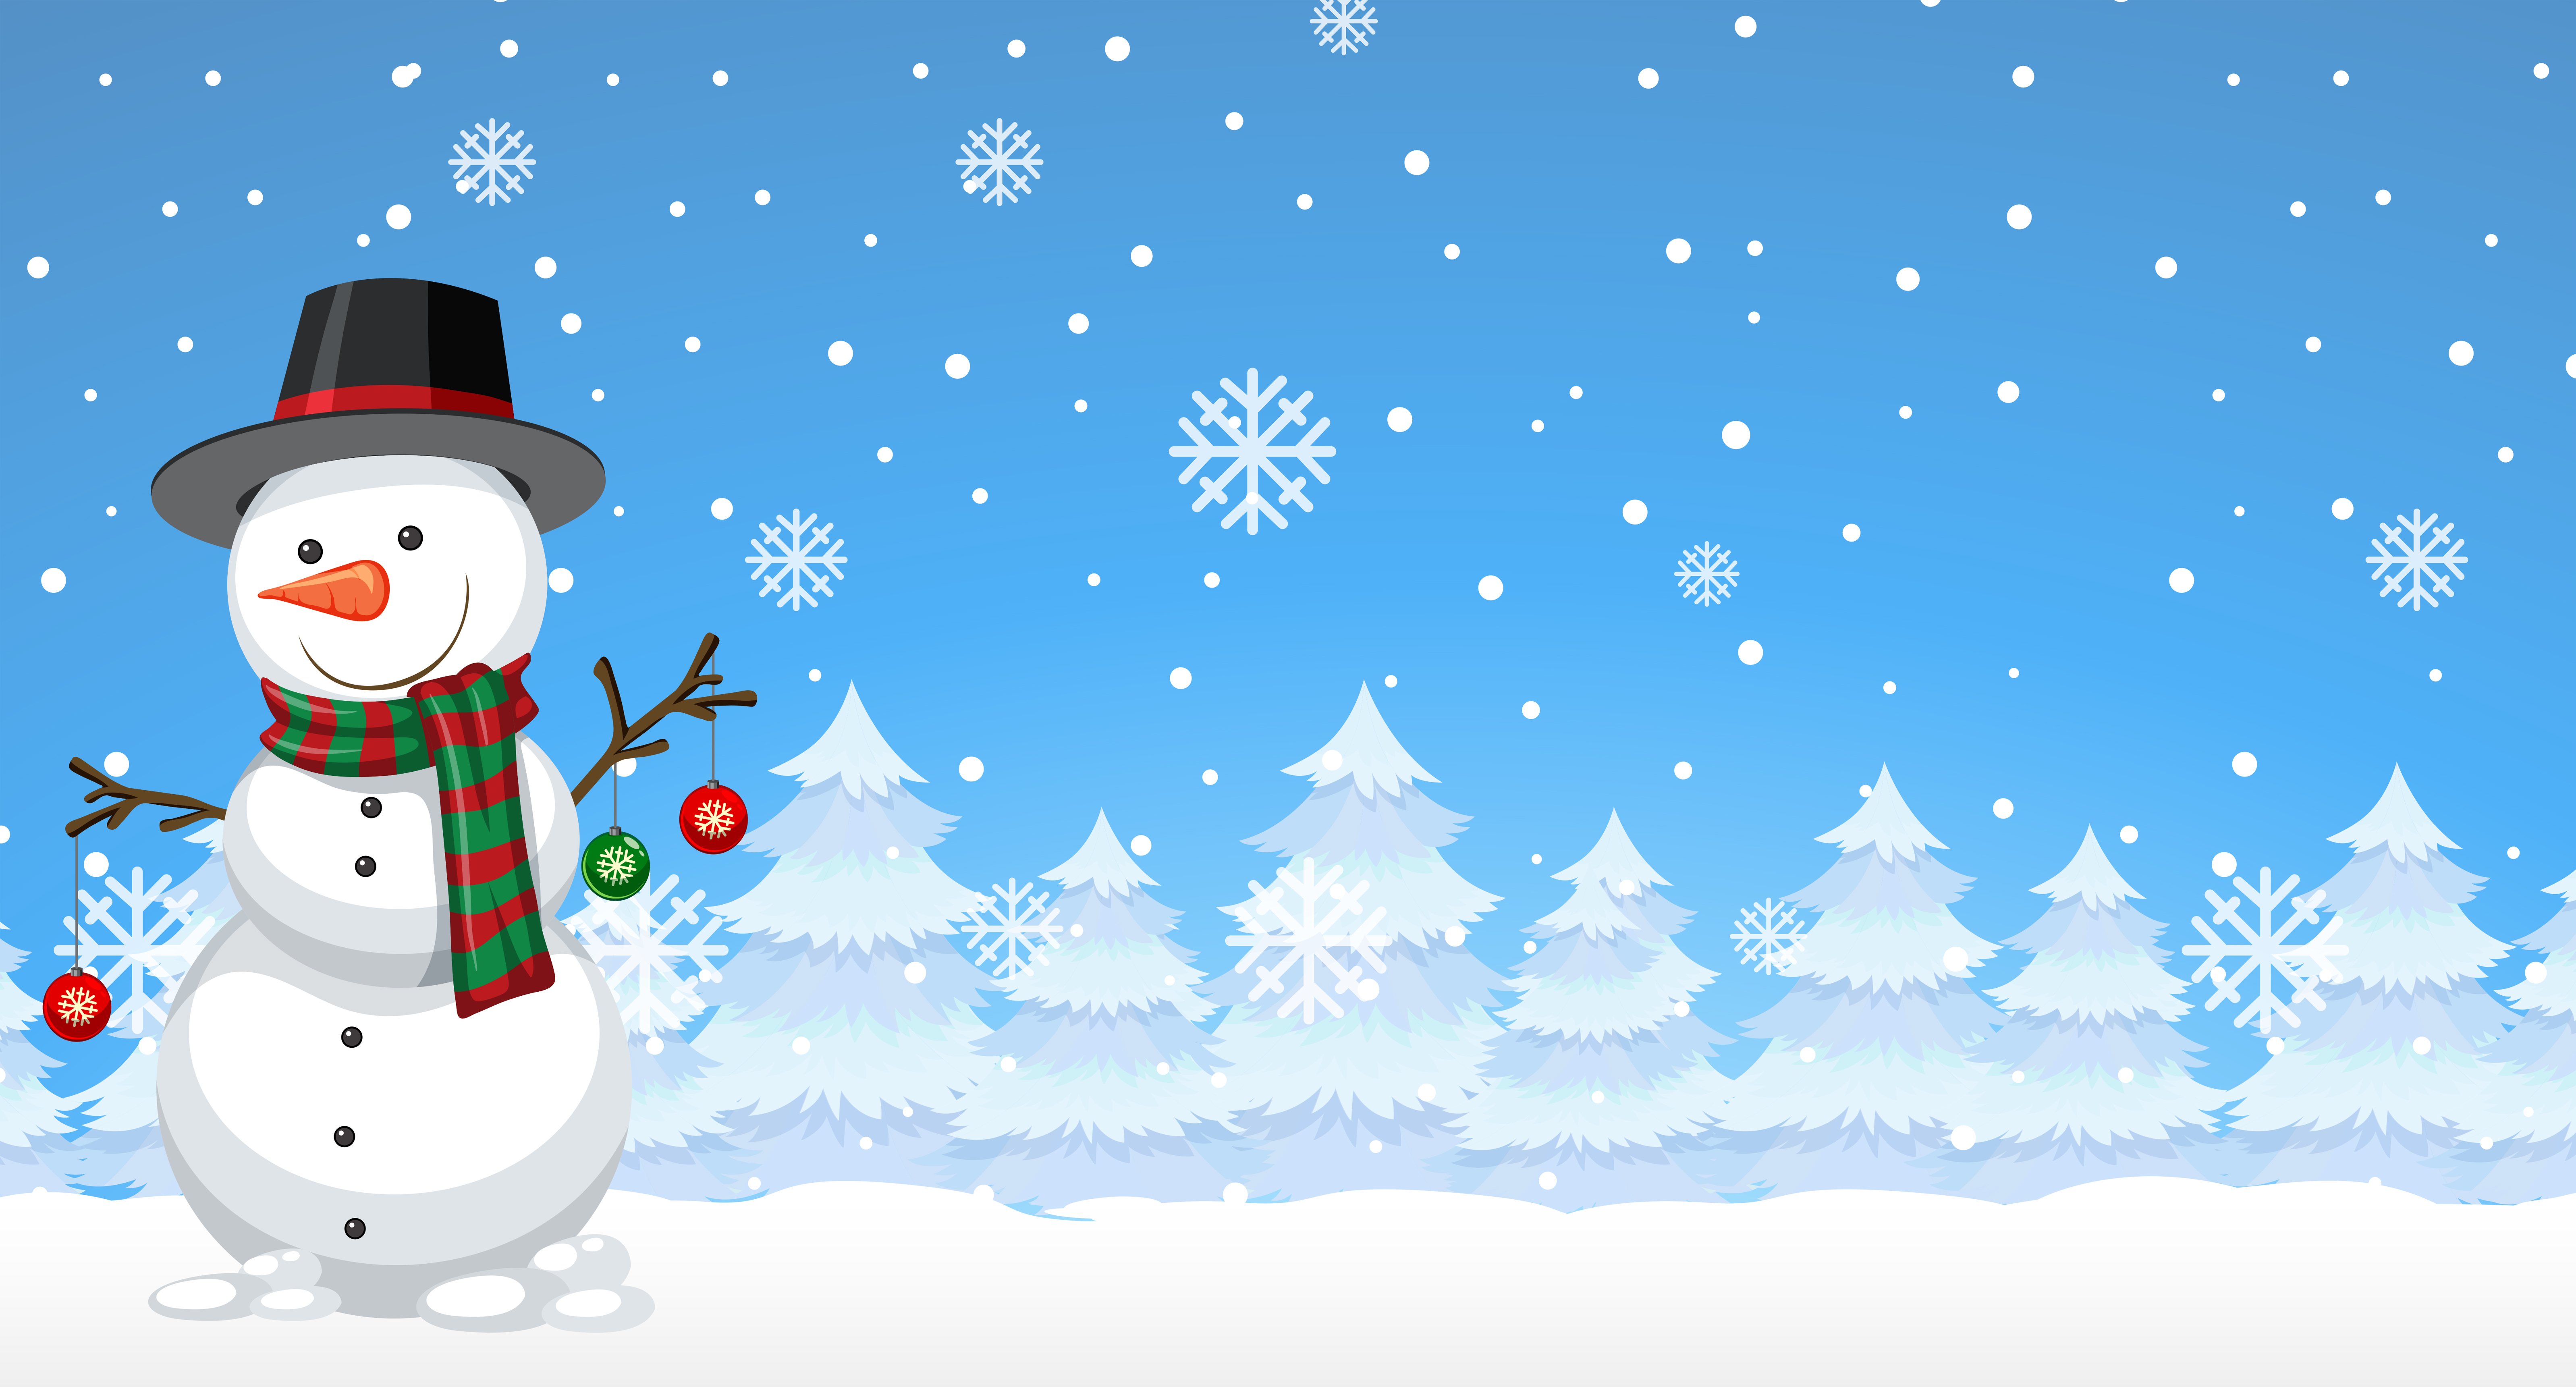 Snowman In The Winter Background Download Free Vectors Clipart Graphics Vector Art